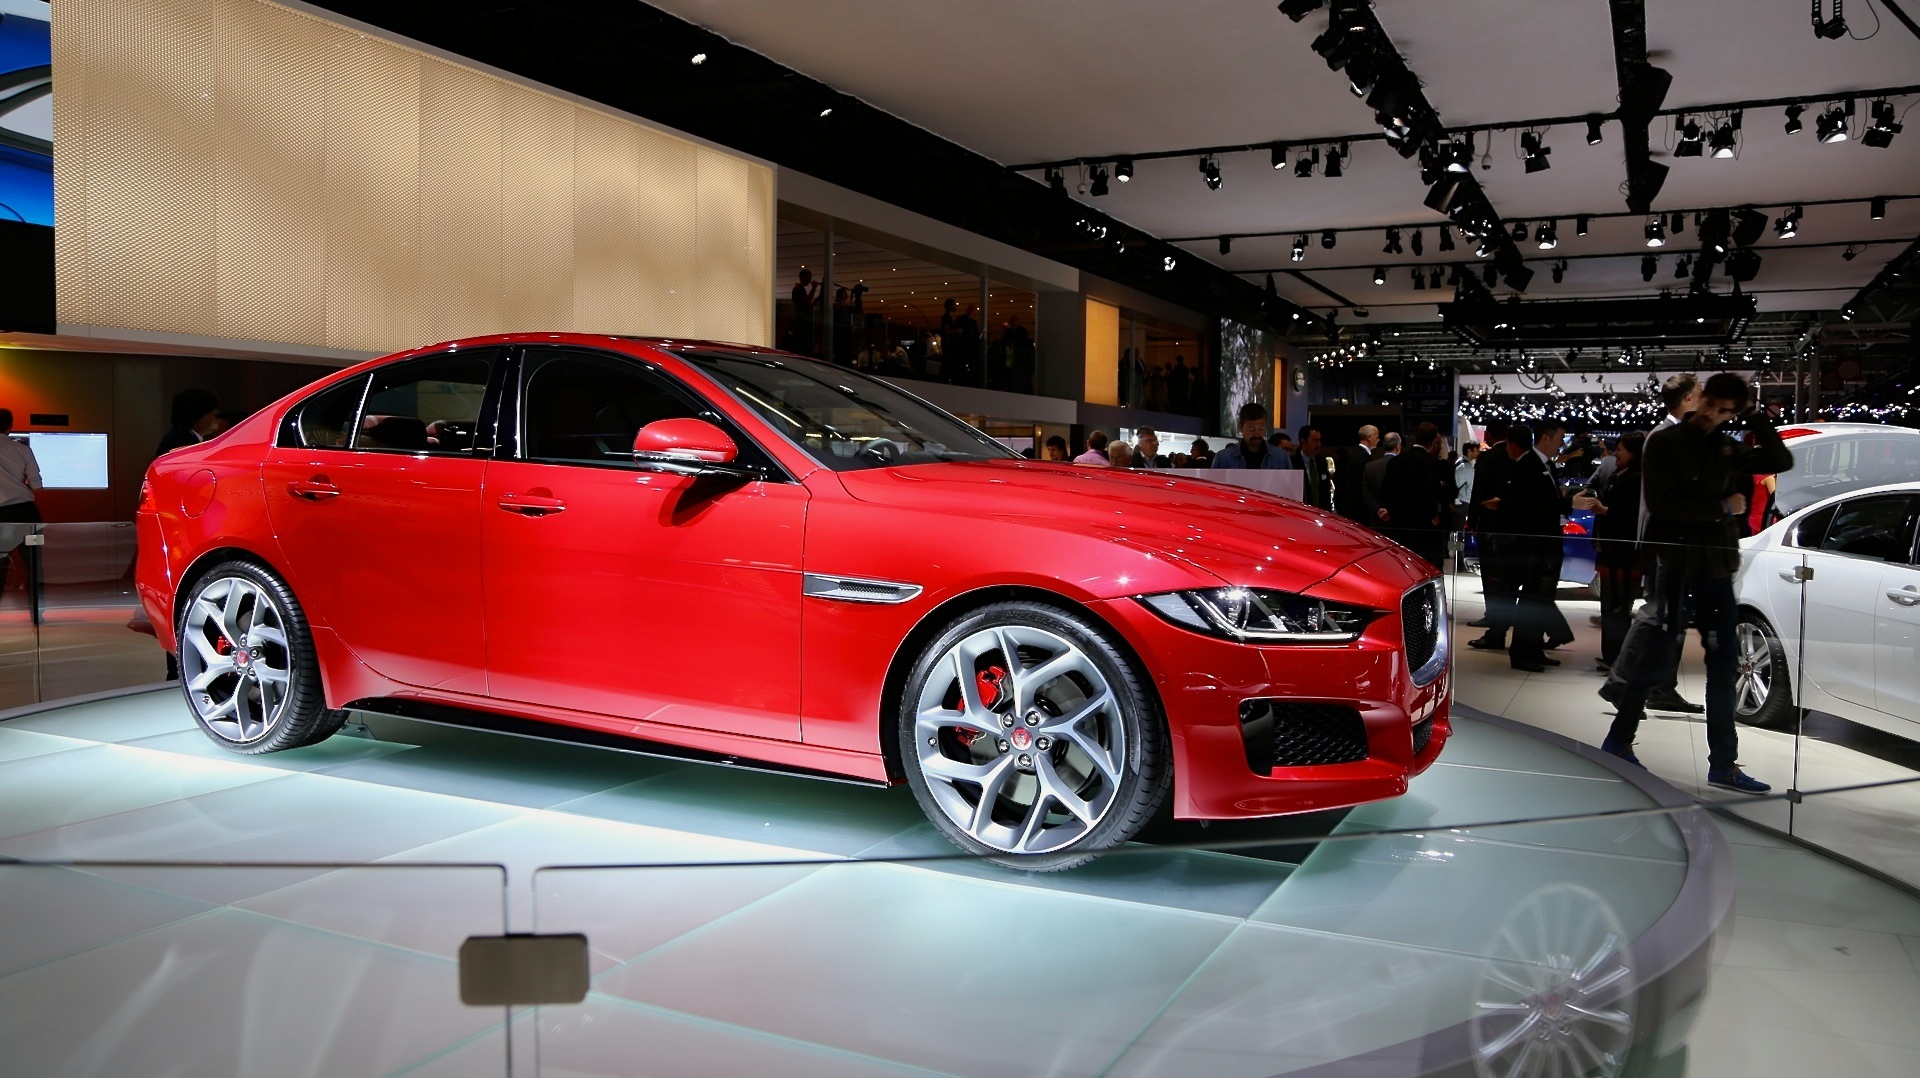 Jaguar Sharpens Prices Across Lineup, 2017 XE To Start At $35,895